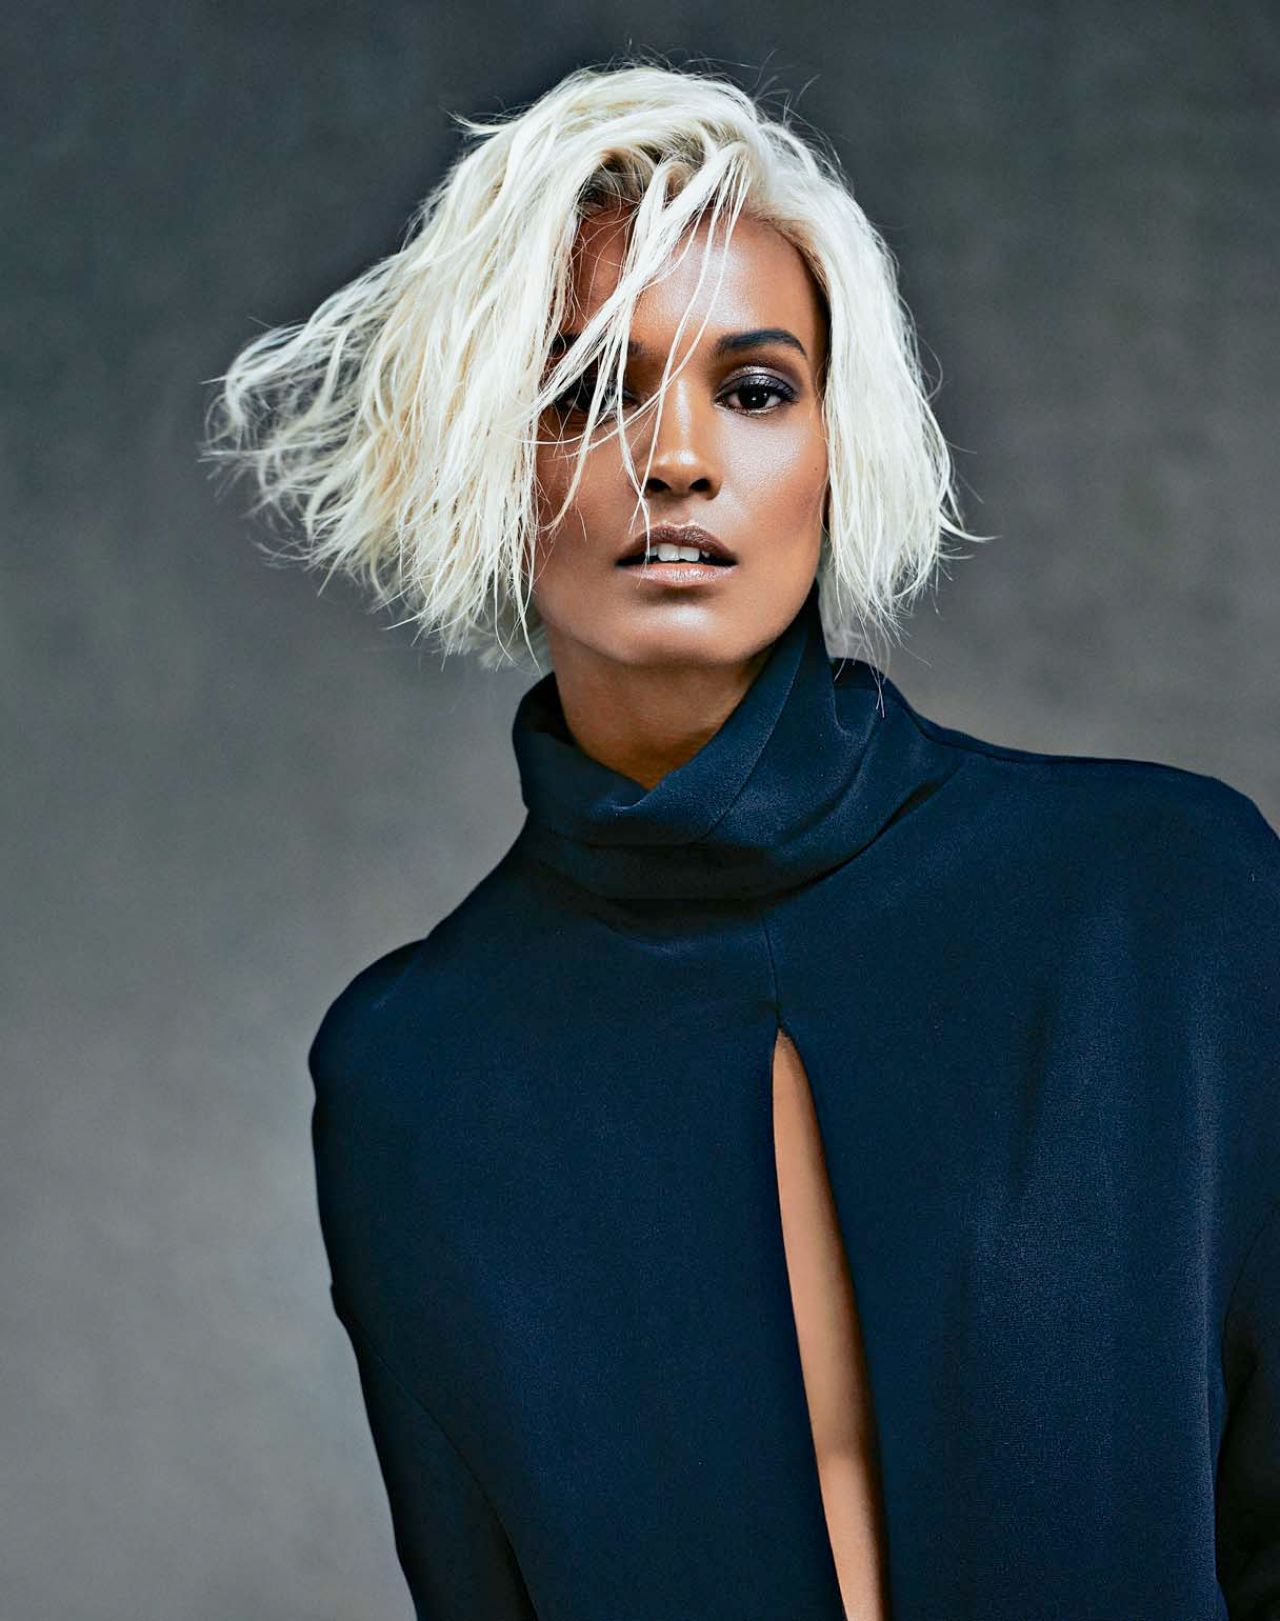 Liya Kebede - Photoshoot for Marie Claire Magazine (France) - October 2014 Issue